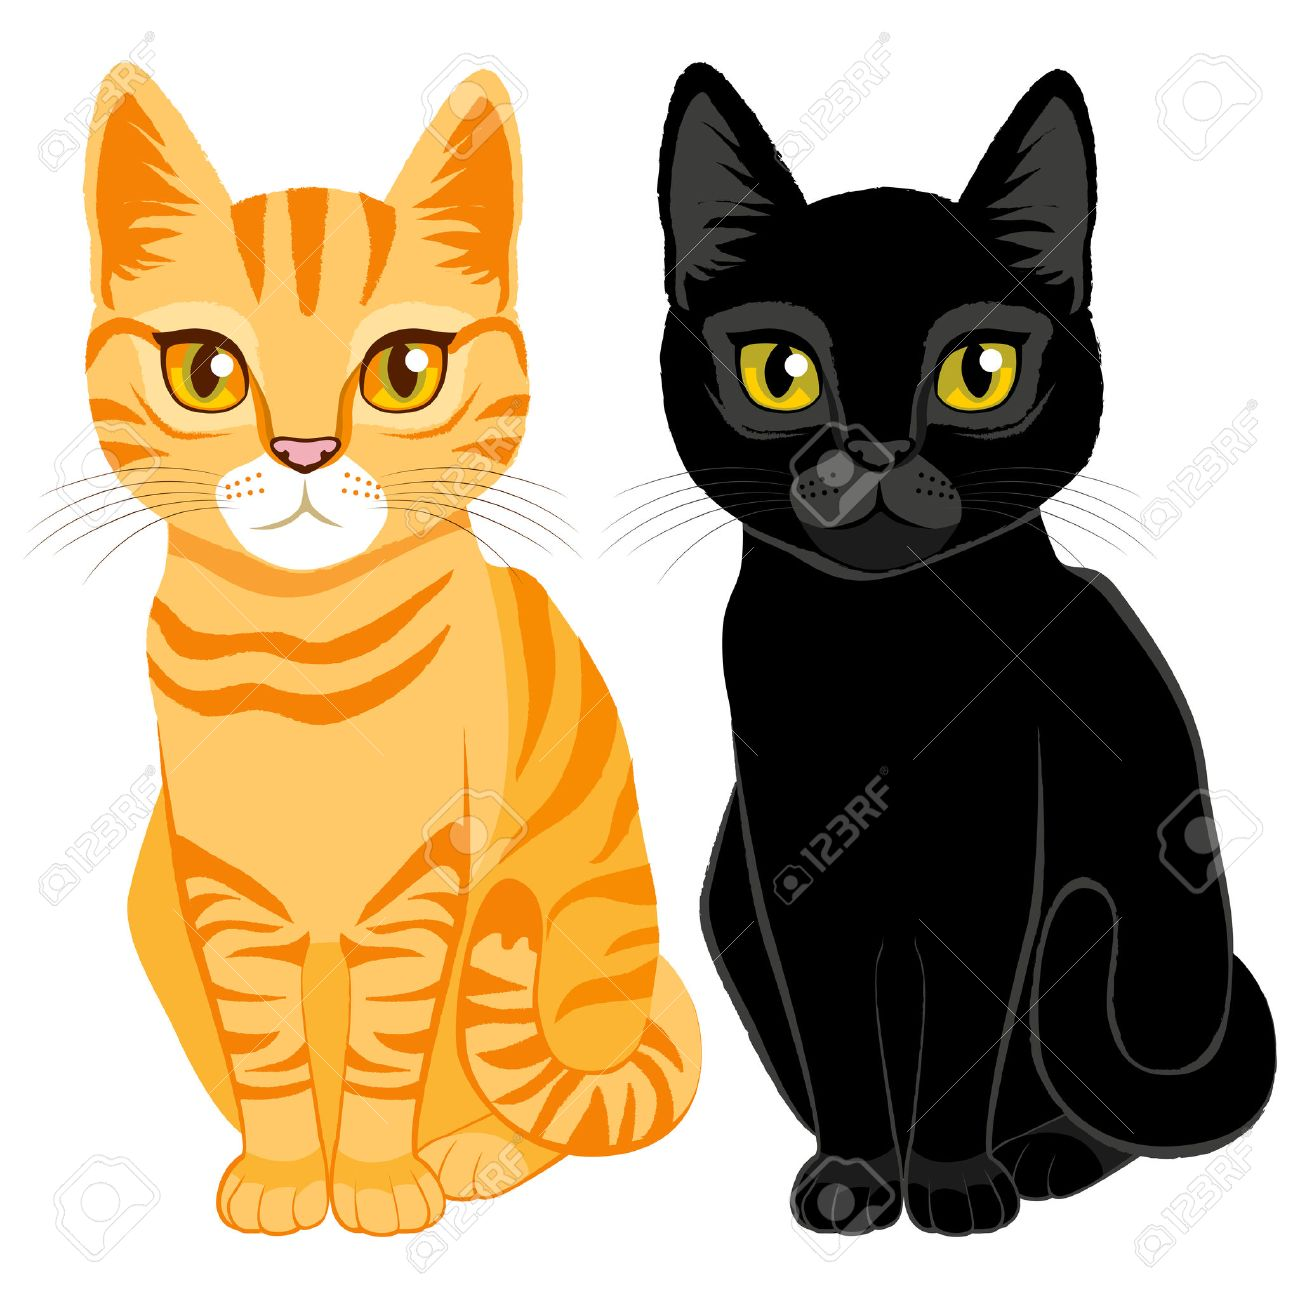 1300x1300 Cute Cats On Orange Tabby And Black Color With Orange And Yellow